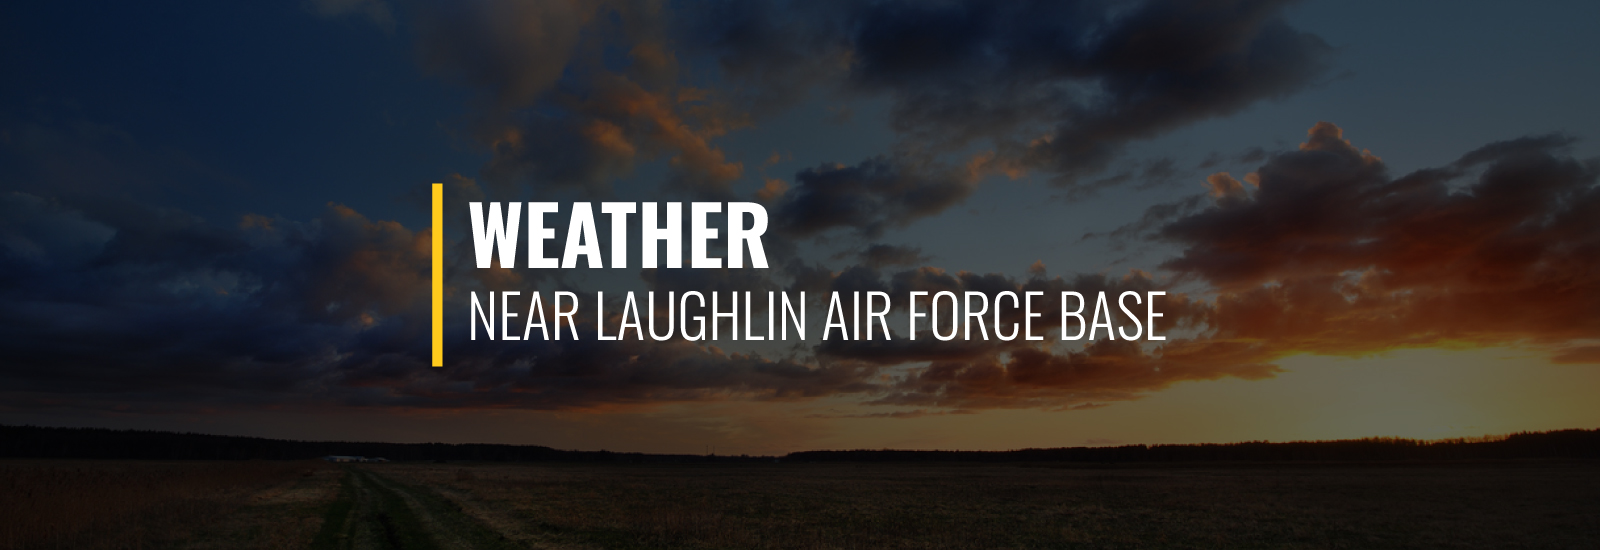 Laughlin AFB Weather